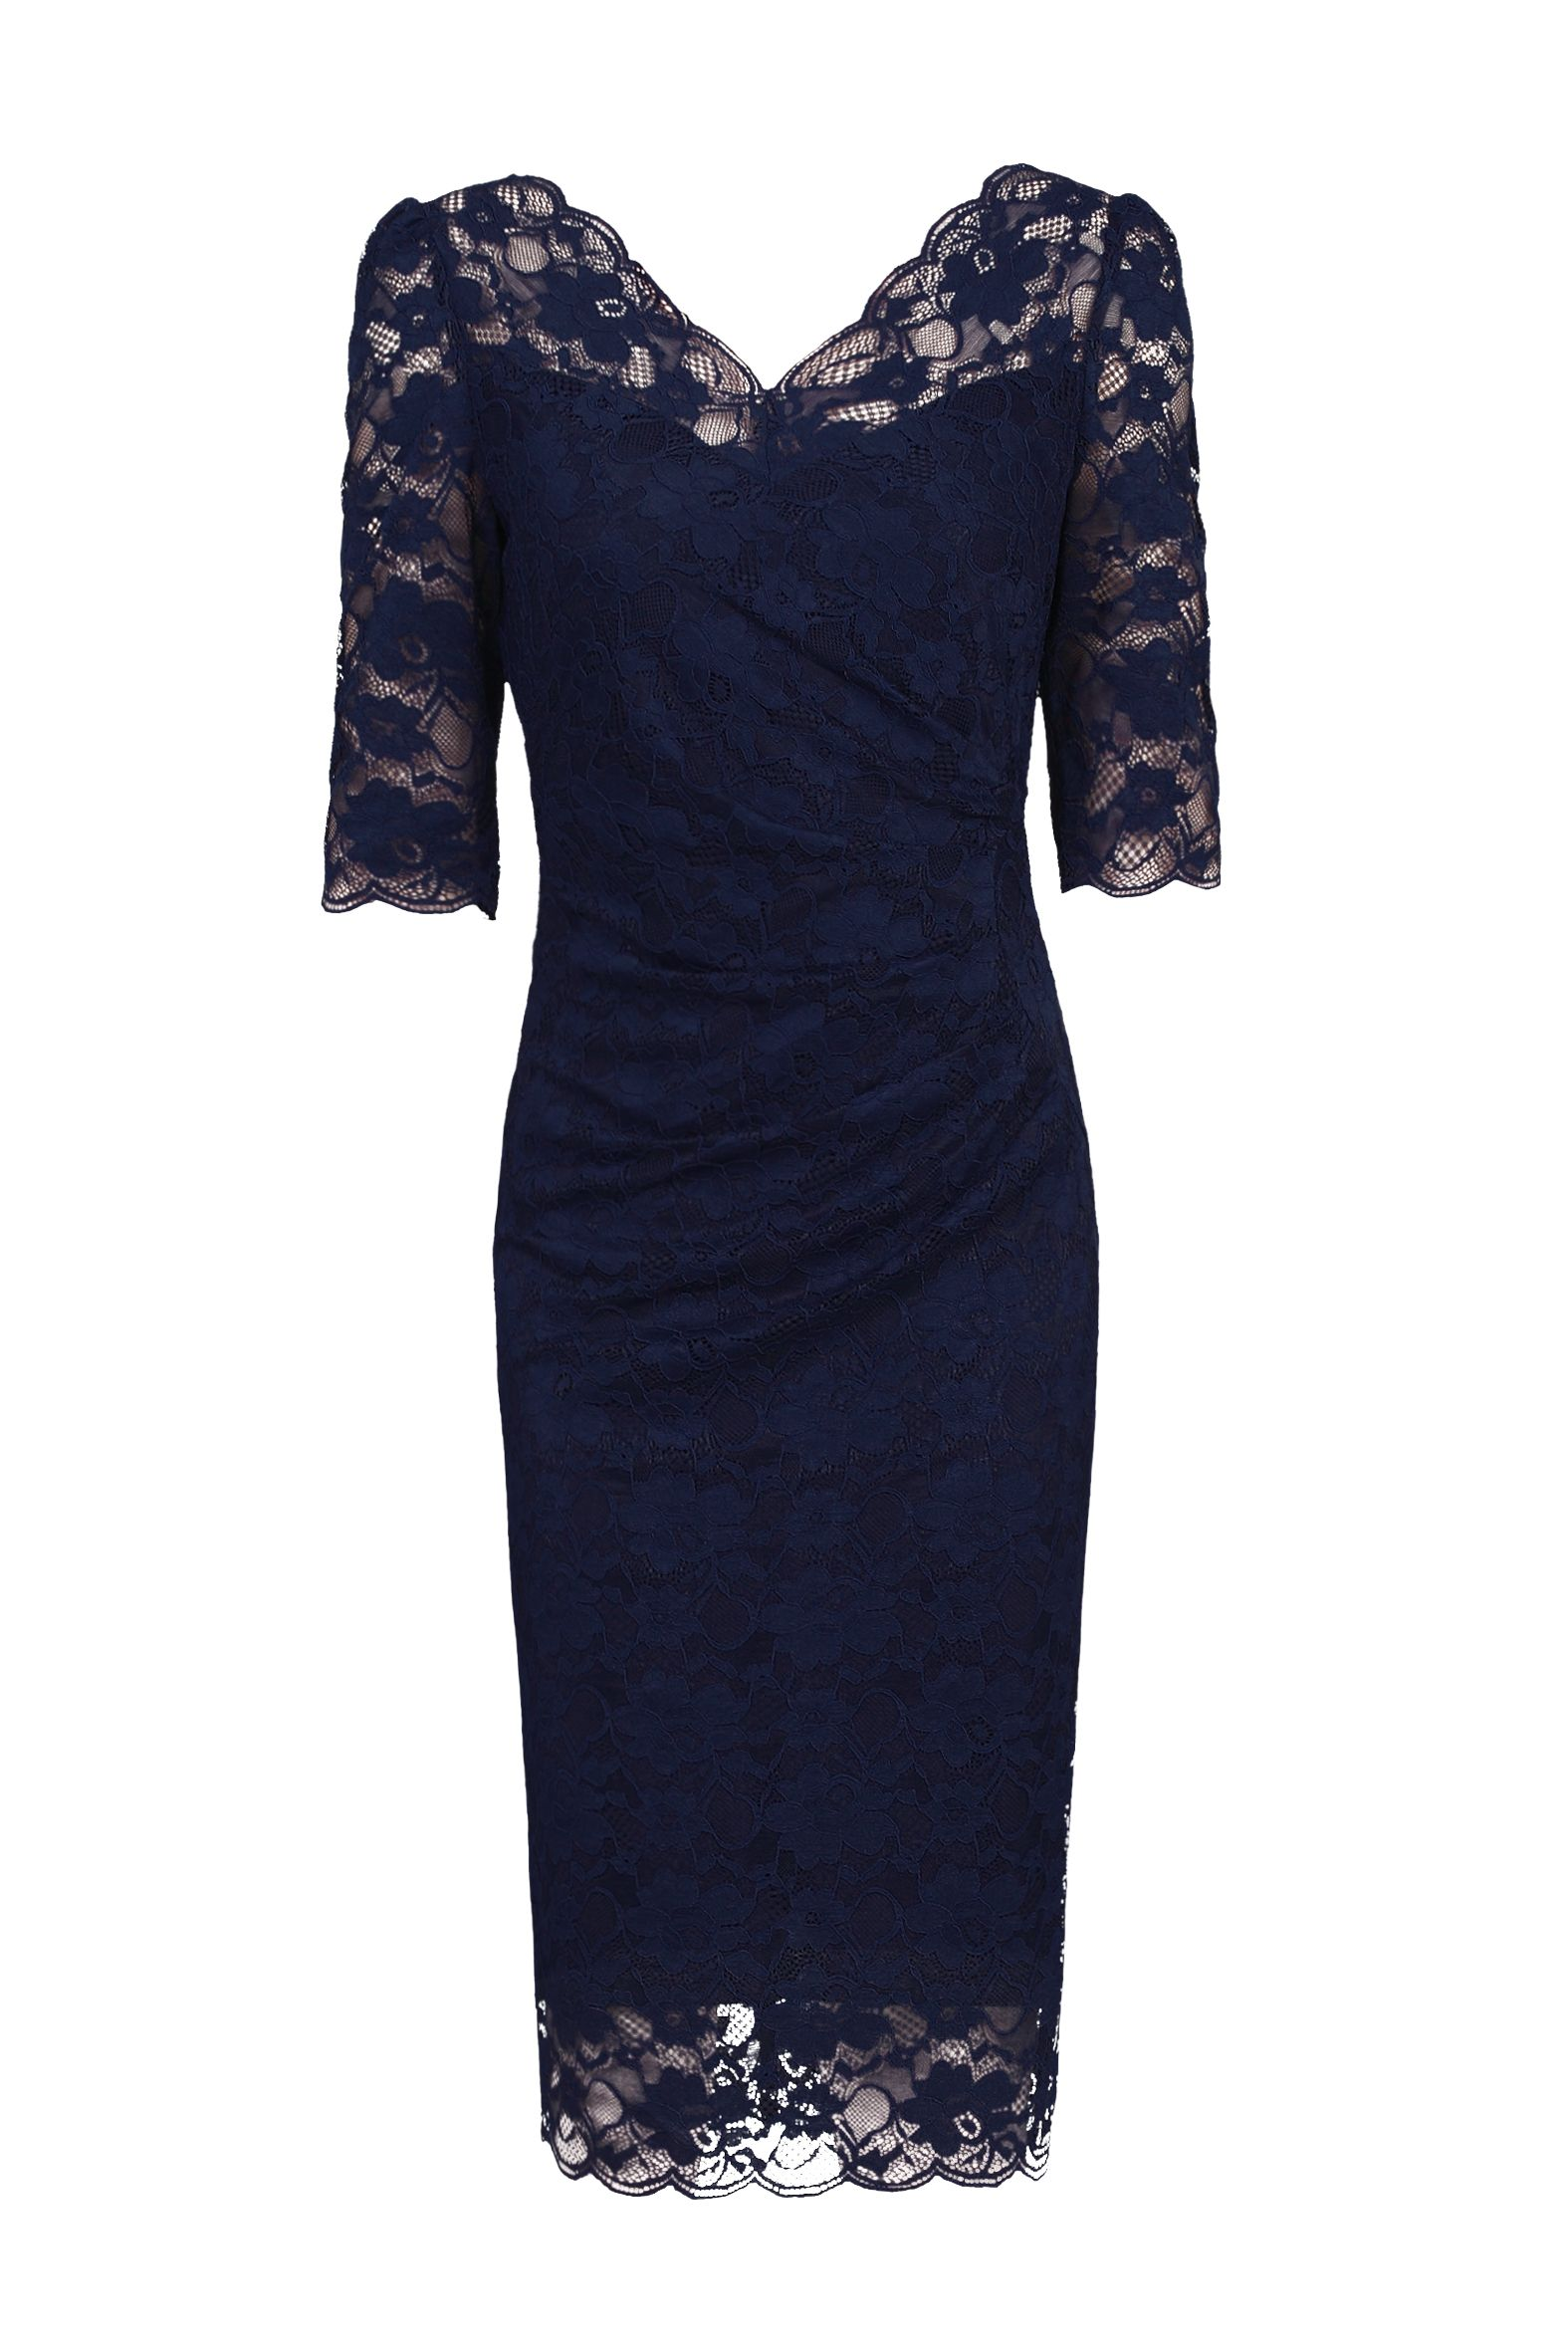 Jolie Moi 3/4 Sleeve Scalloped Lace Dress, Blue